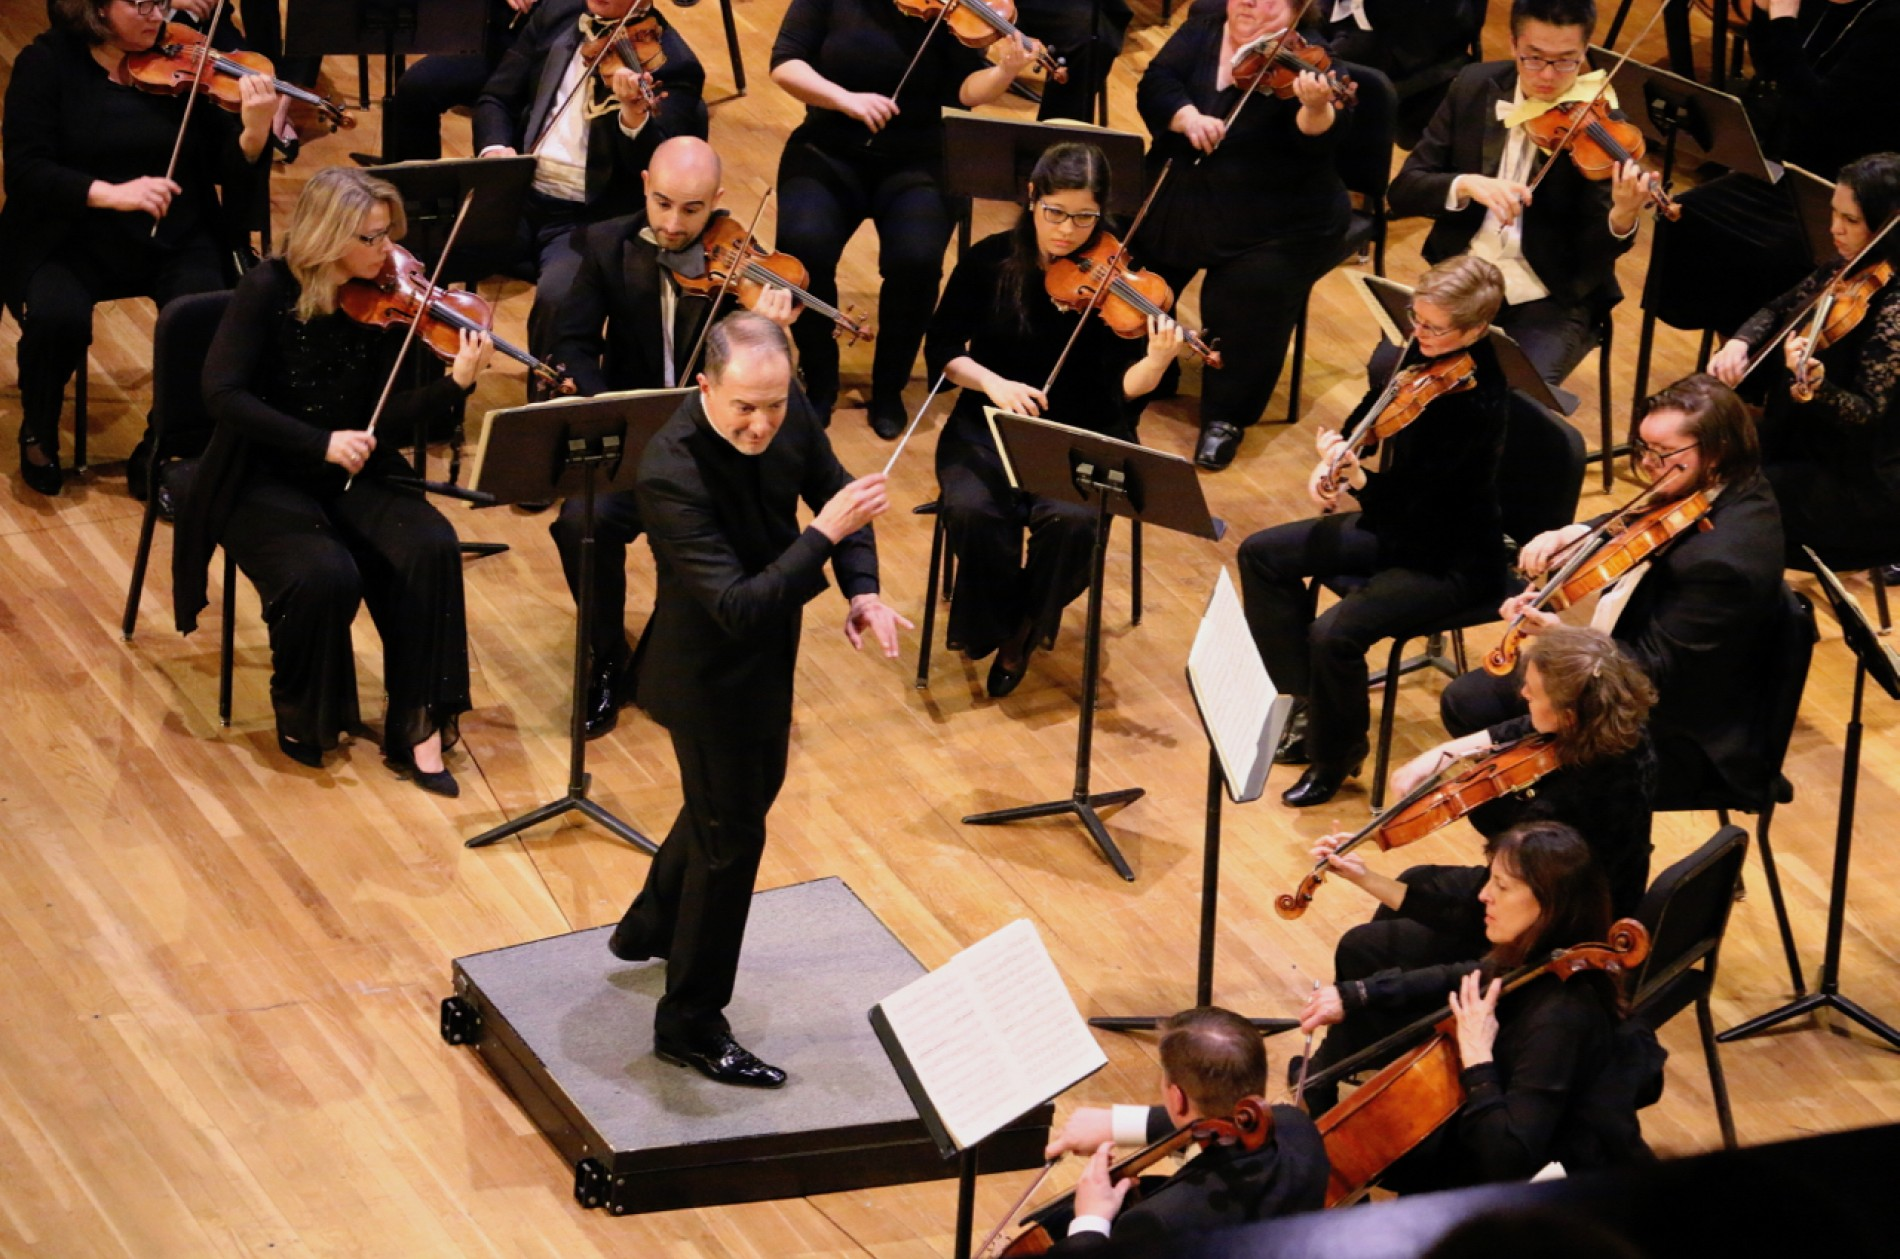 Rossen Milanov conducts the PSO in concert; everyone wears concert black.